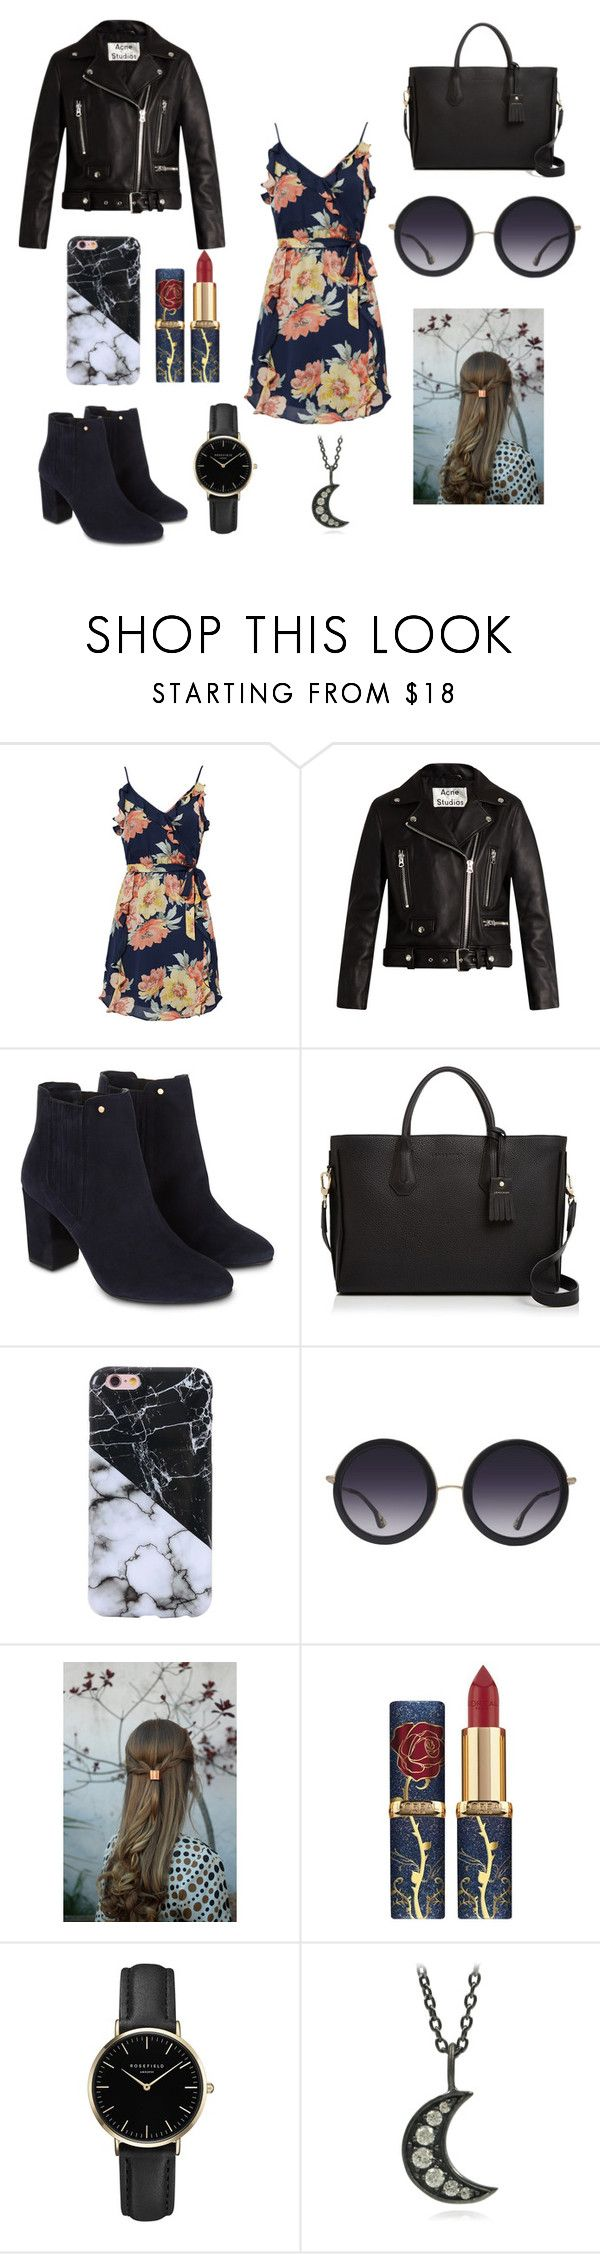 Outfits by saracolasurdo on Polyvore featuring mode, Joie, Acne Studios, Monsoon, Longchamp, ROSEFIELD and Alice + Olivia